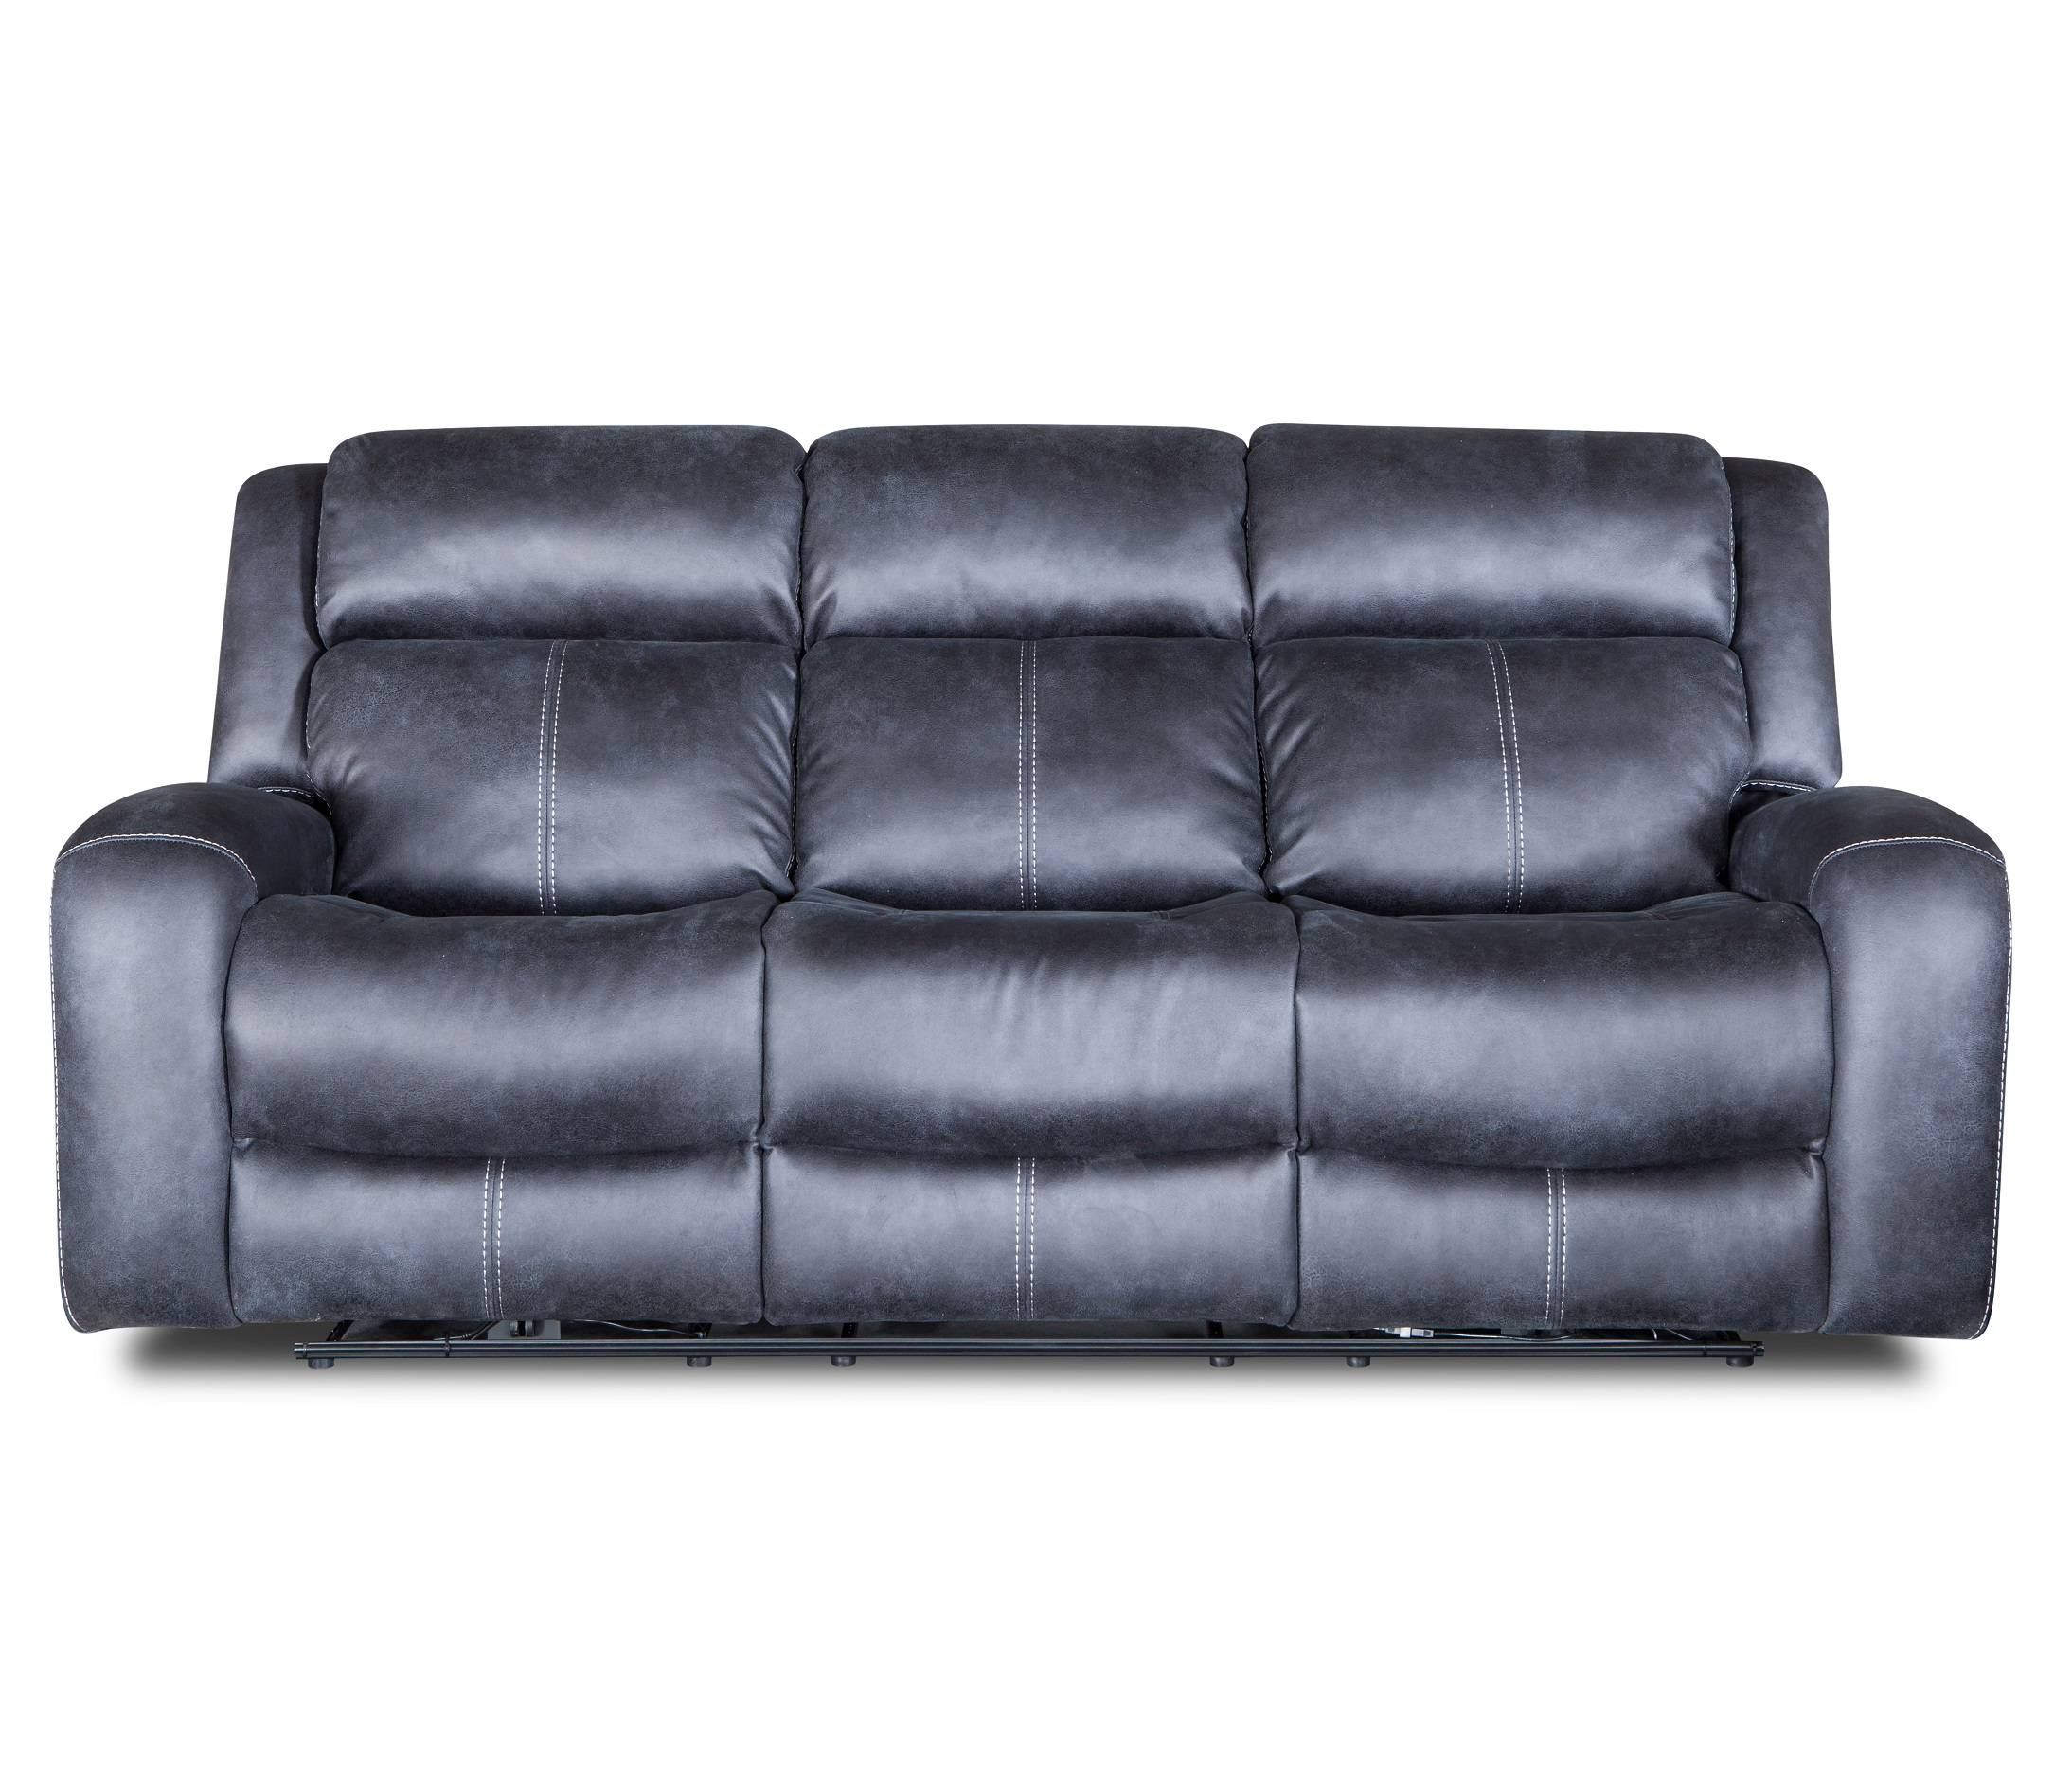 Hot Selling Modern Design Rocker Leather Recliner Sofa